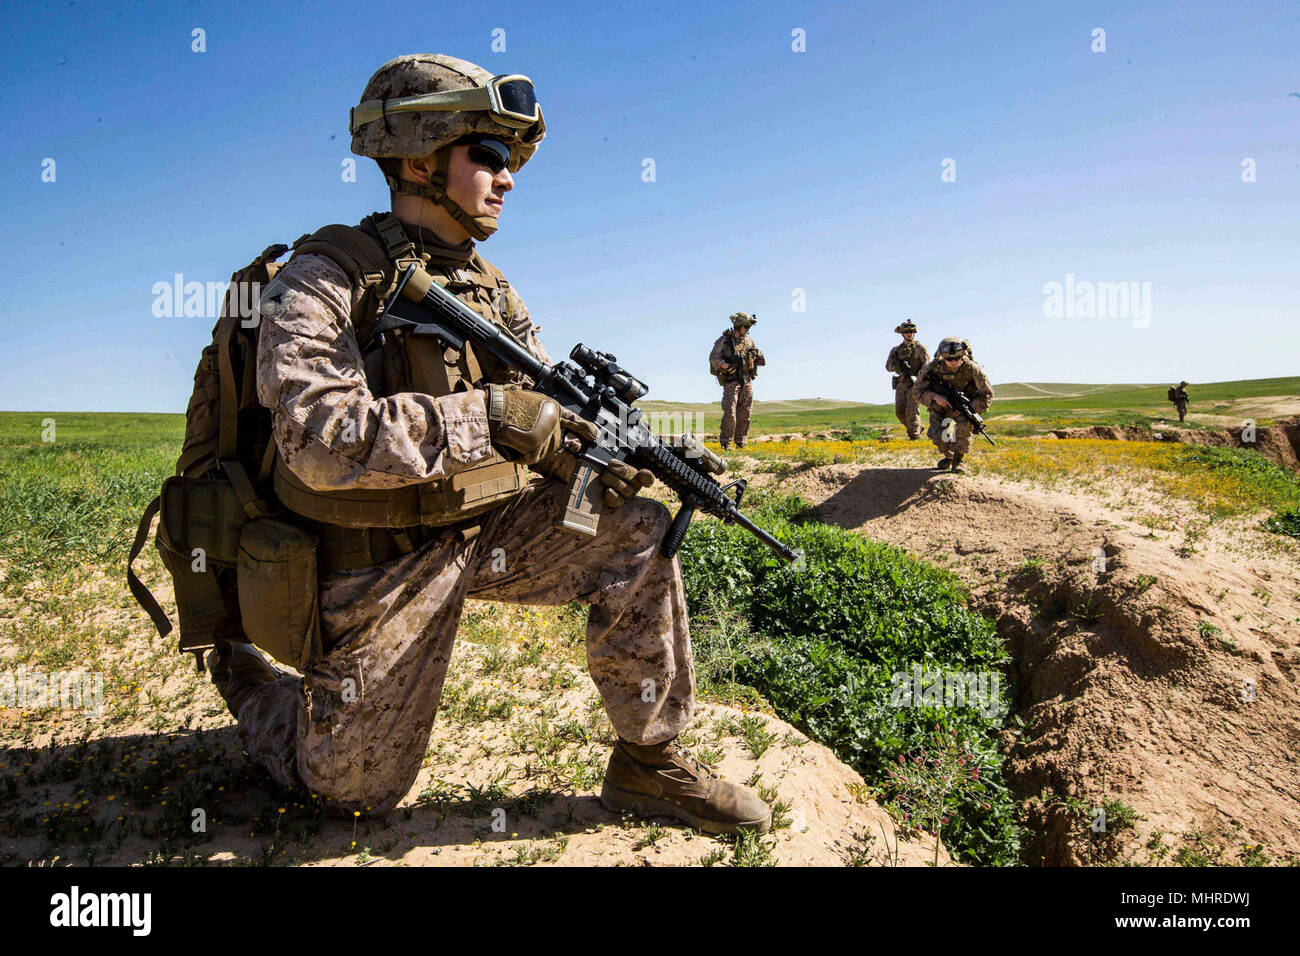 HAIFA, Israel (March 14, 2018) U.S. Marine Lance Cpl. Michael A. Ospina, a mortarman assigned to the Tactical Recovery of Aircraft Personnel (TRAP) team, 26th Marine Expeditionary Unit (MEU), surveys the surrounding area during a simulated search mission, in Haifa, Israel, March 14, 2018. Juniper Cobra is a computer assisted exercise conducted through computer simulations focused on improving combined missile defense capabilities and overall interoperability between the U.S. European Command and Israel Defense Force. (U.S. Marine Corps Stock Photo